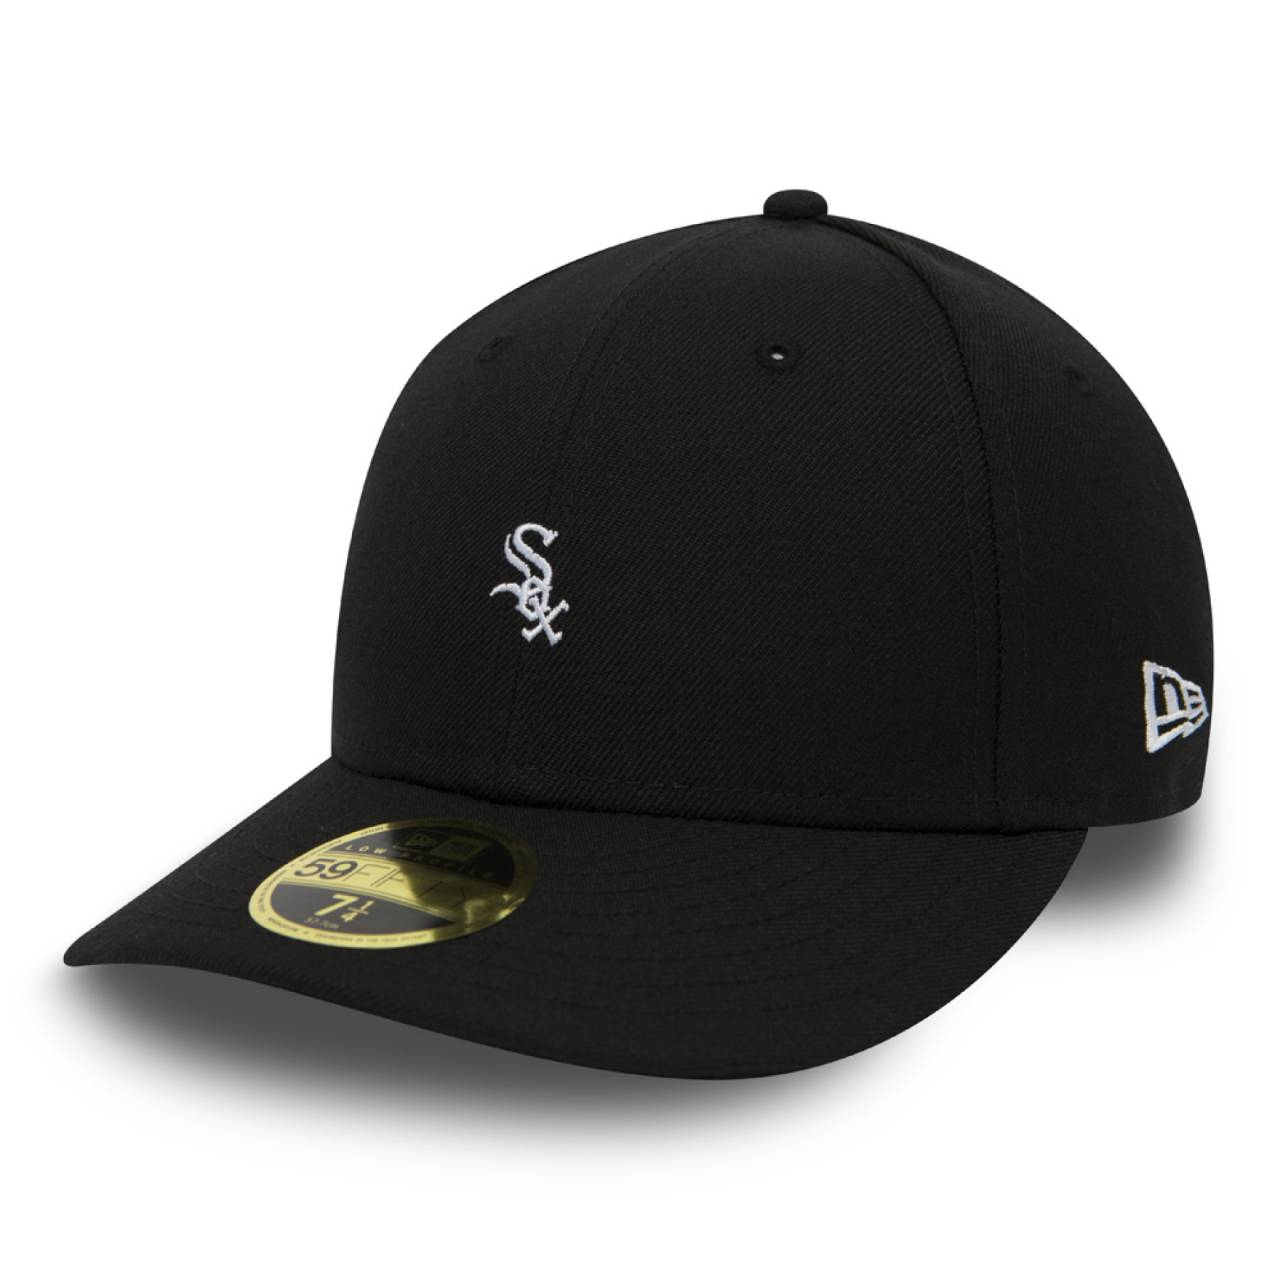 59FIFTY LOW PROFILE CHICAGO WHITE SOX CAP